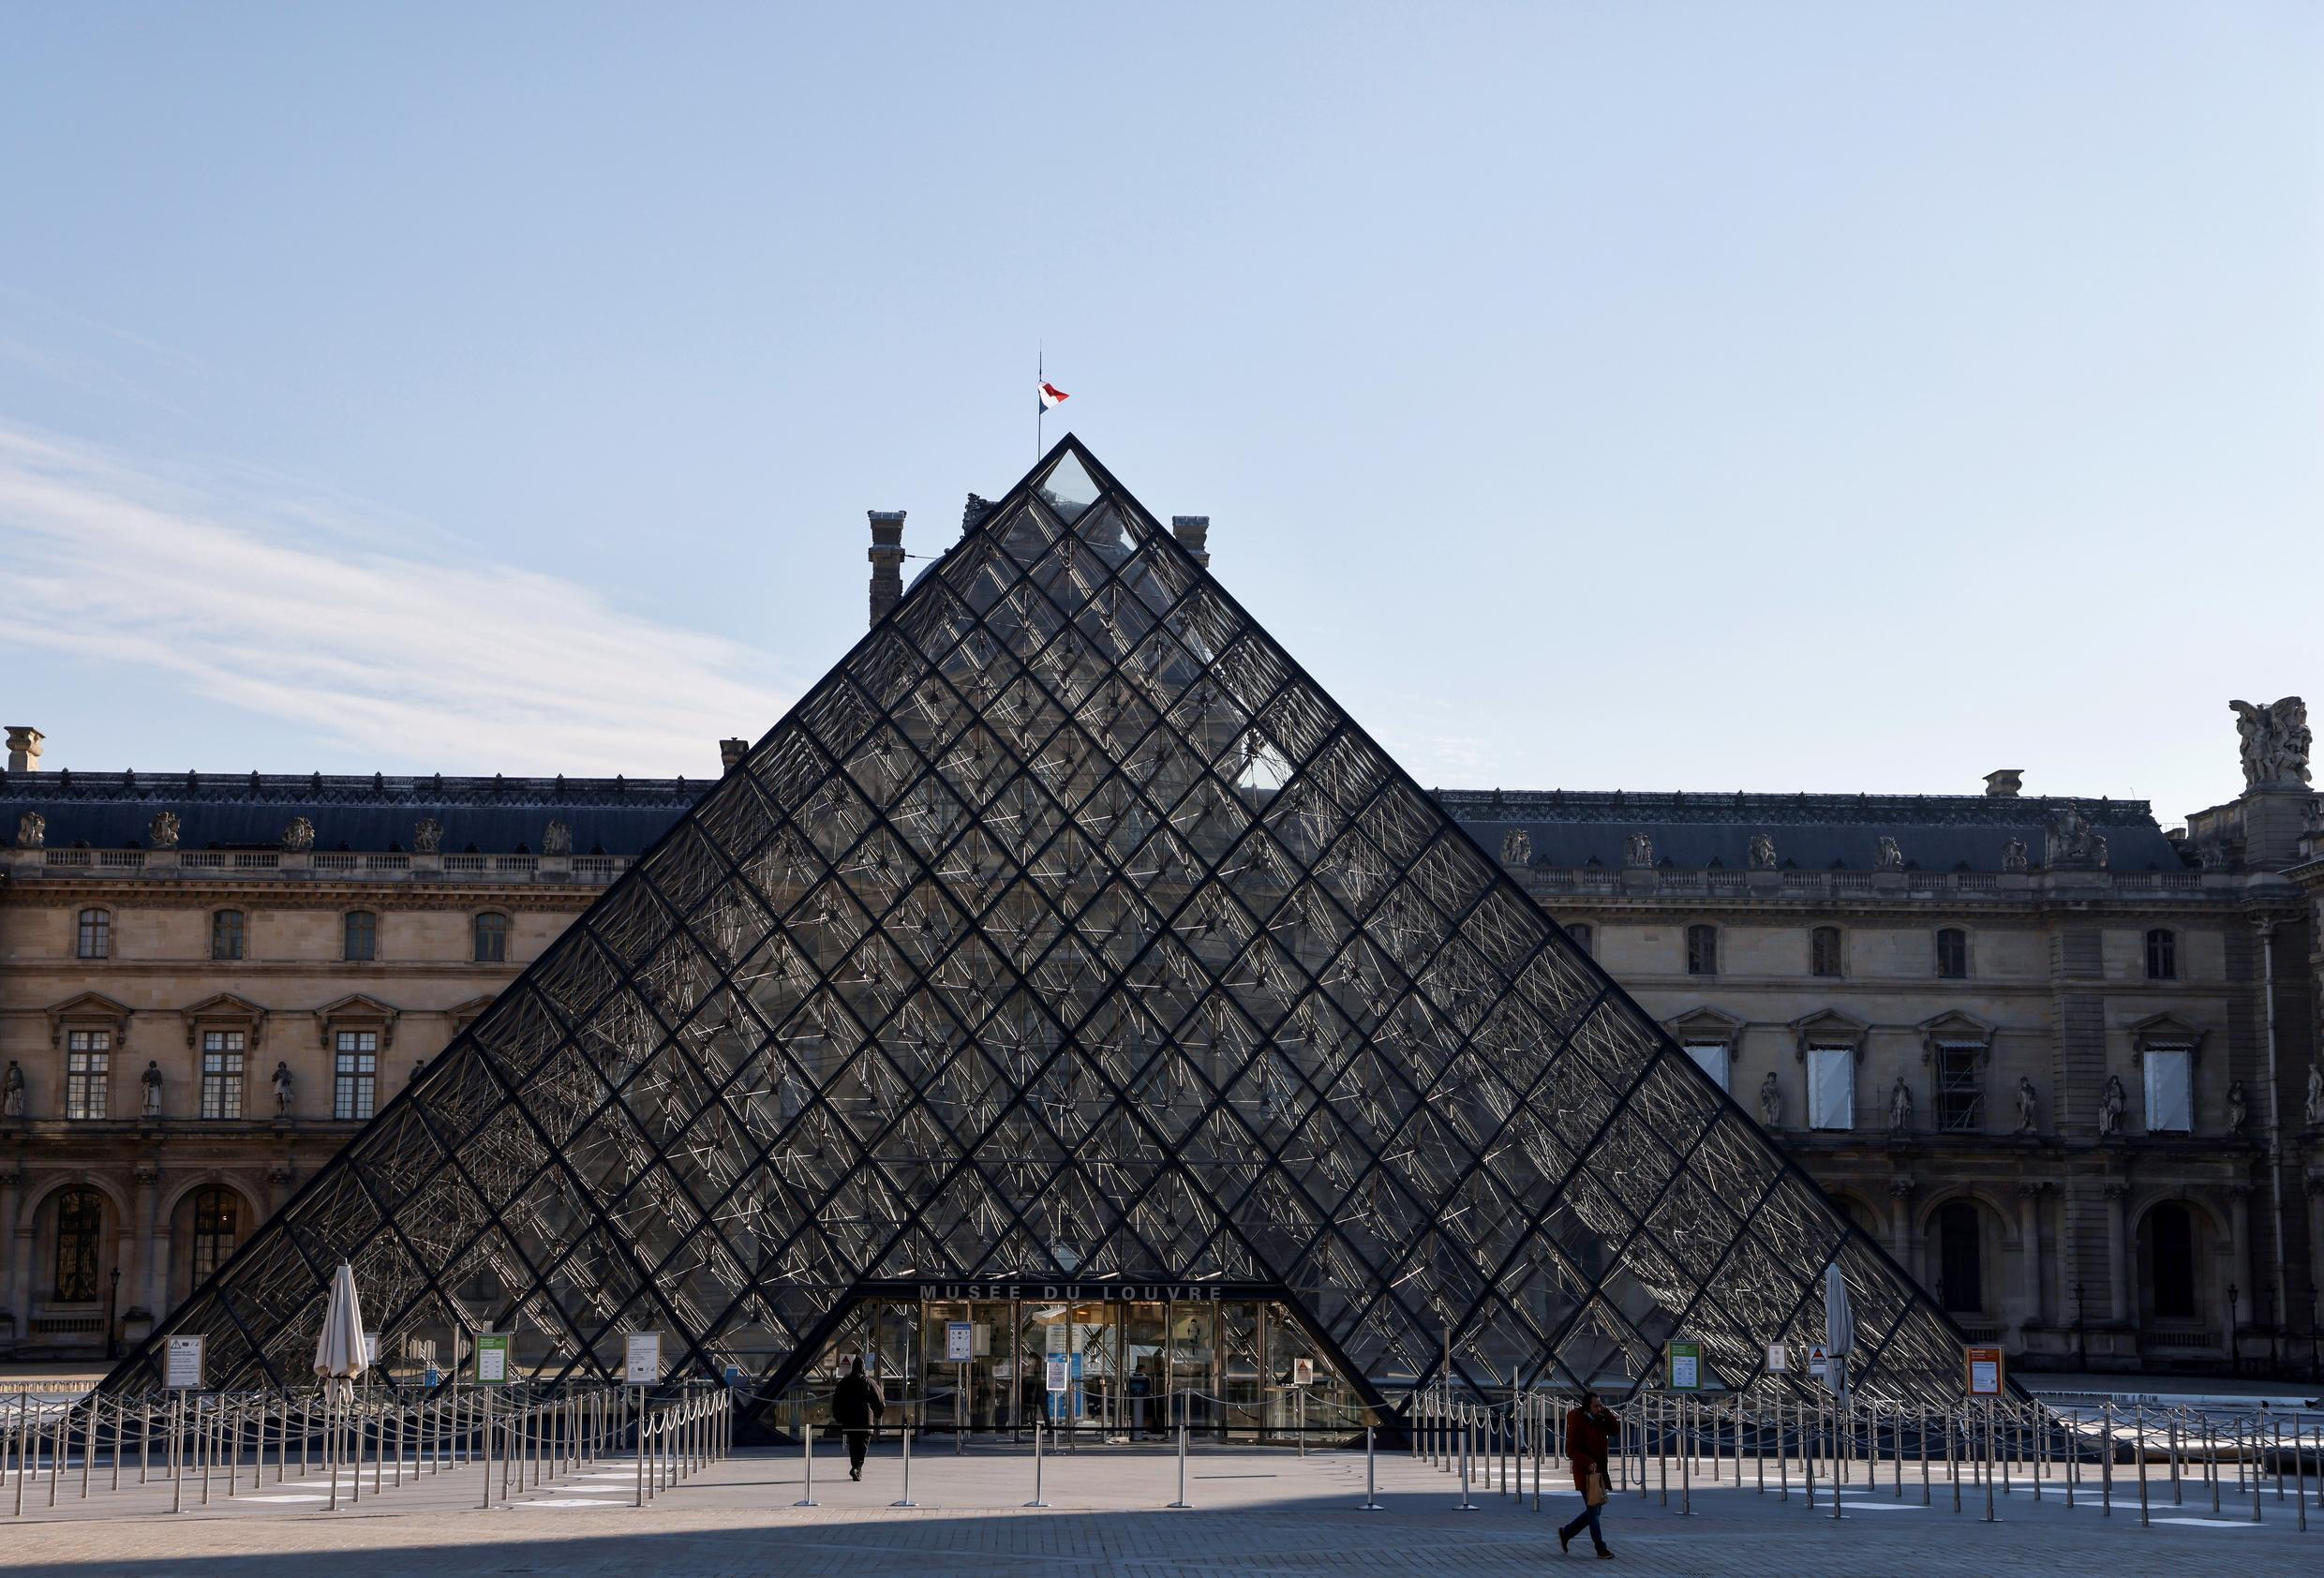 The Louvre has explored new ways to raise cash during Covid